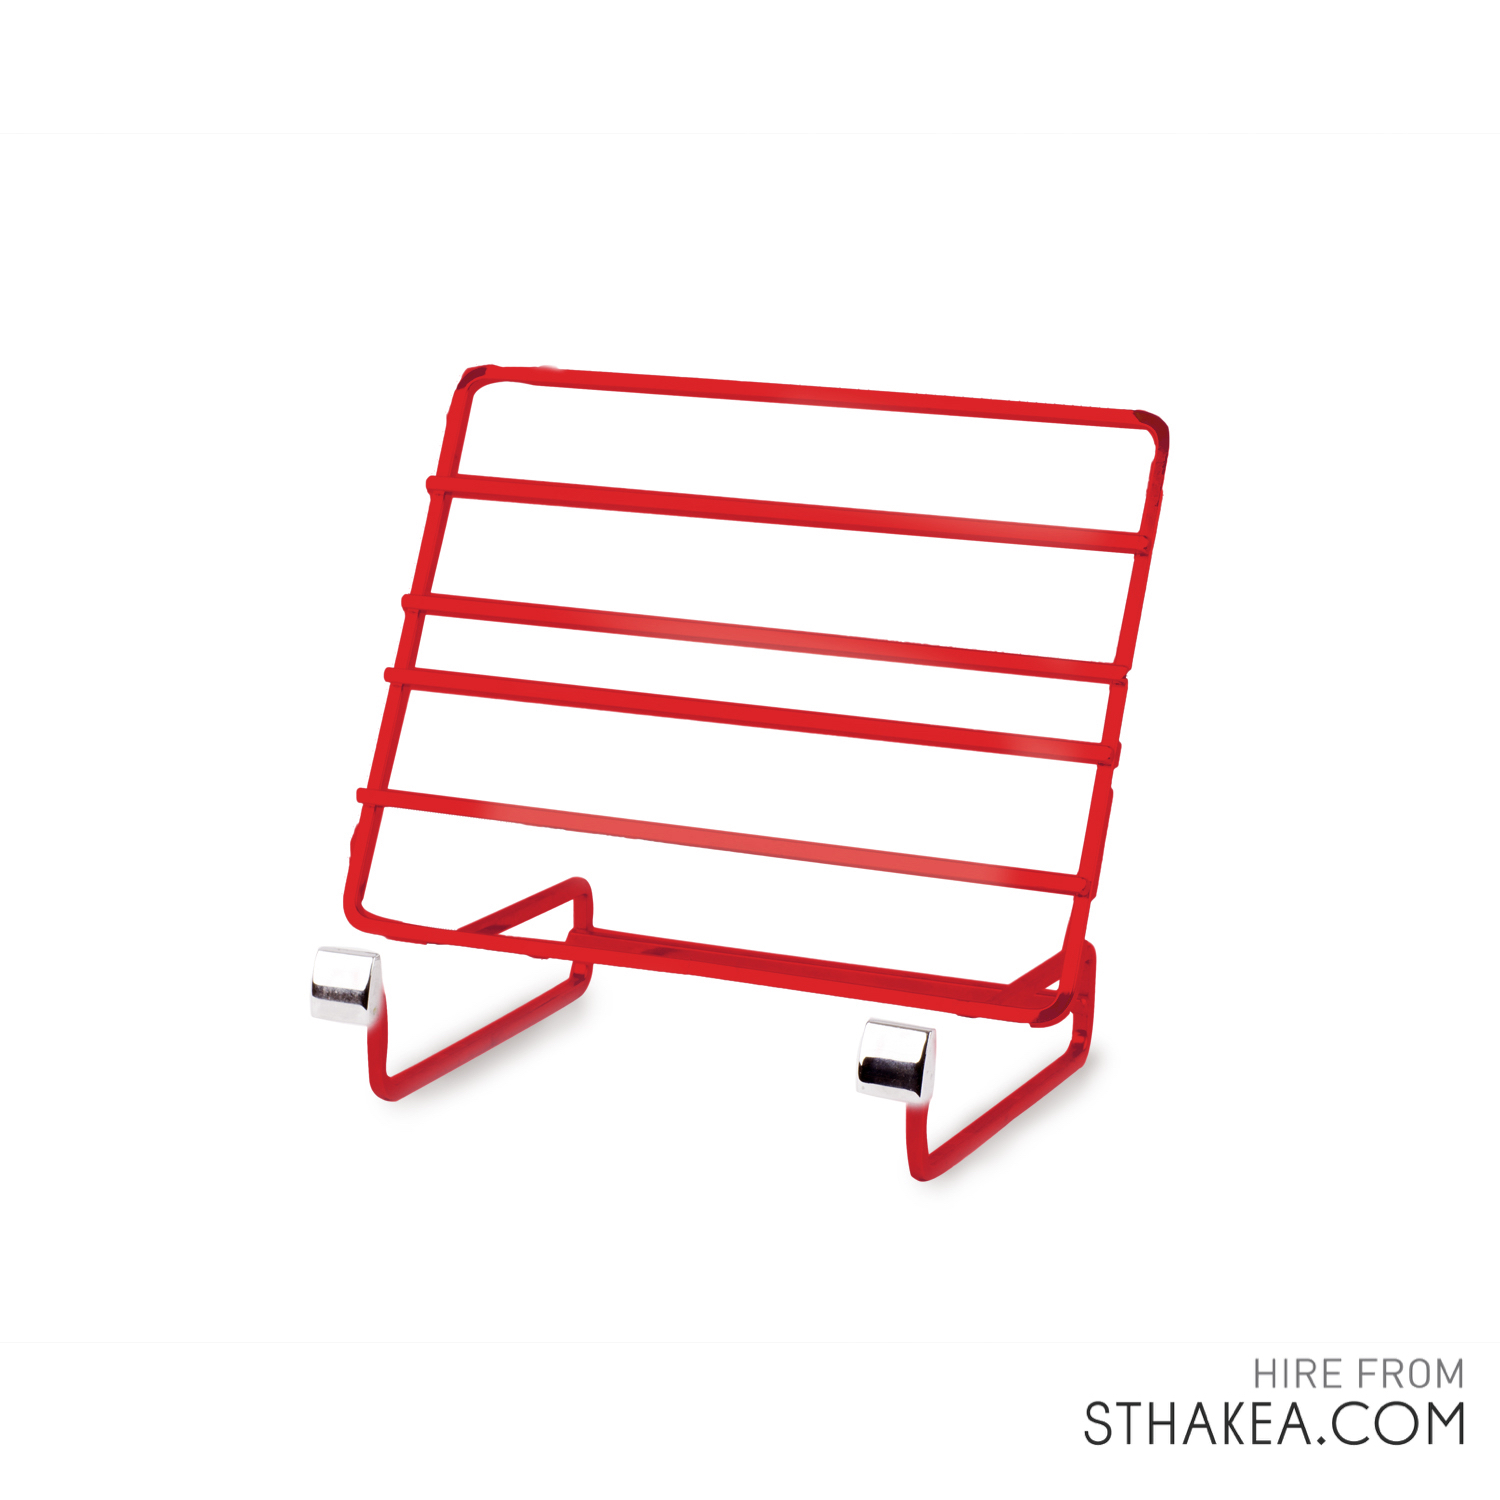 St Hakea Melbourne Event Hire Display Stand Red.jpg